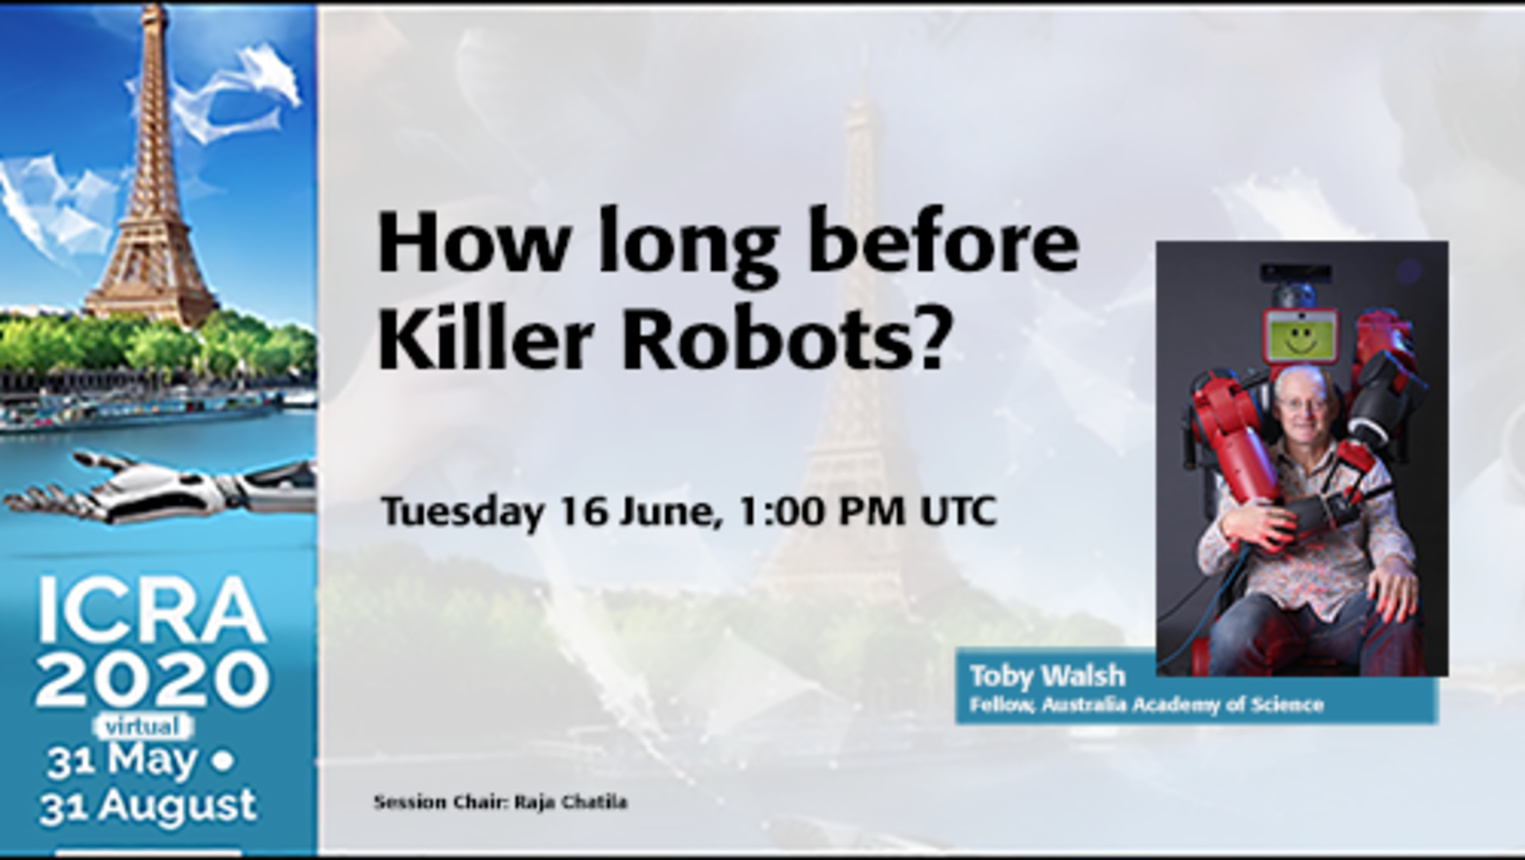 ICRA 2020 Keynote - How long before Killer Robots?